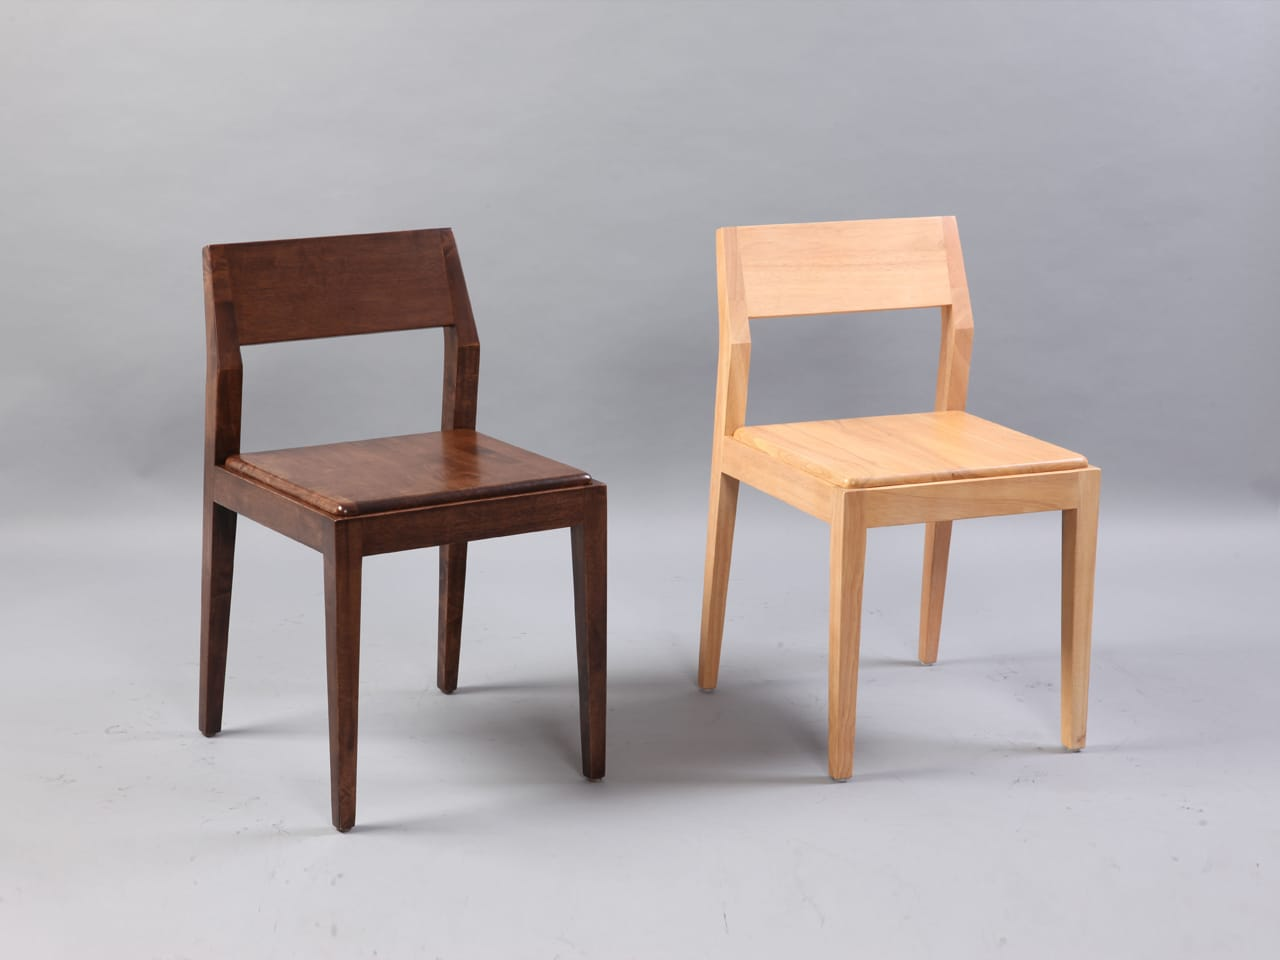 wooden chair singapore grey folding covers reese  wood comfort design the and table people